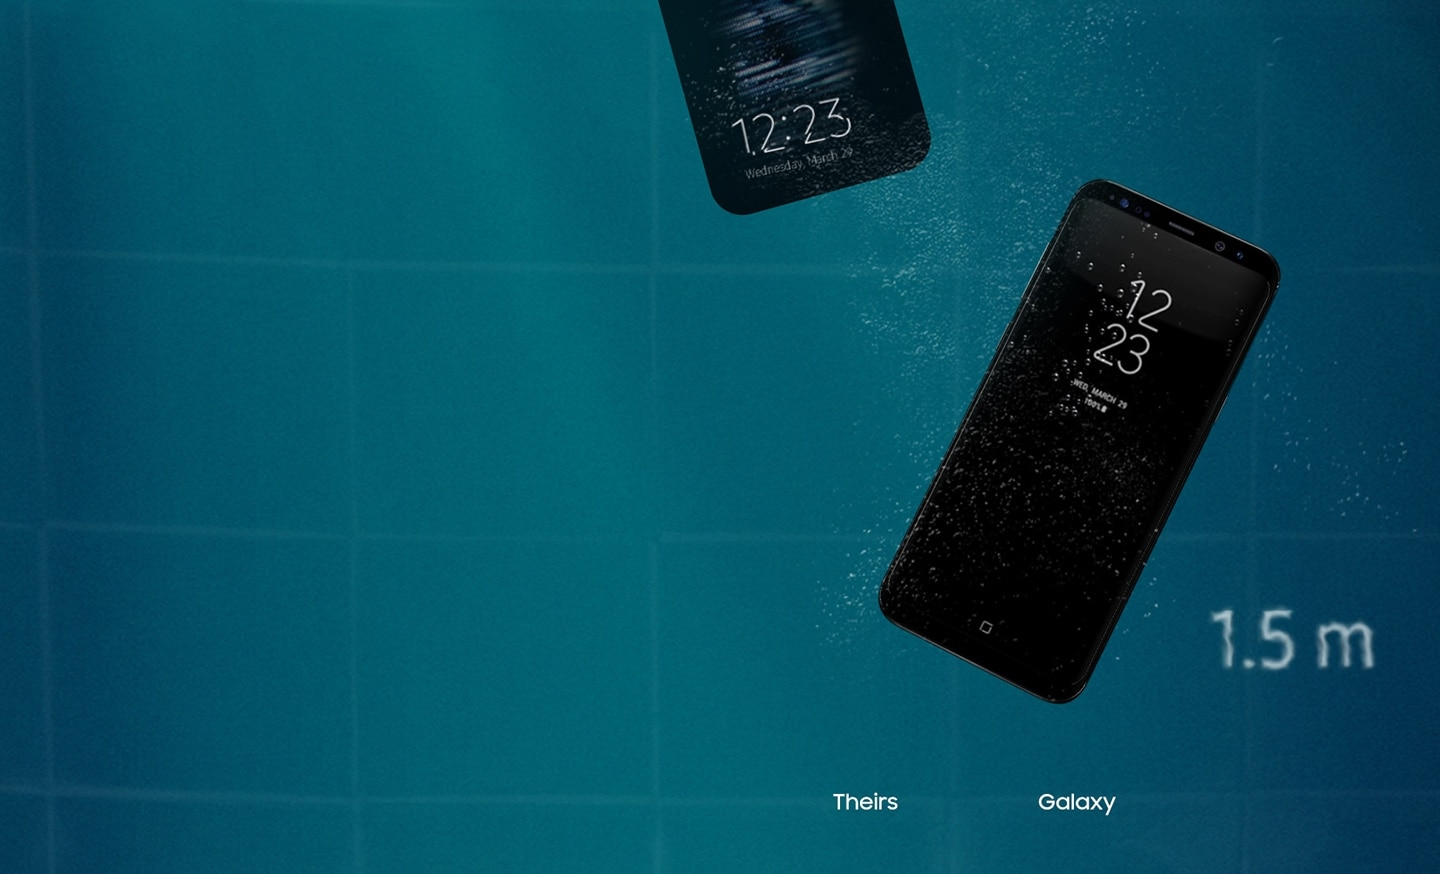 Galaxy S8 midnight Black waterproof to depth of 1m past 1.5m and the other phone that the screen is blurred after 1m and the screen goes out after 1.5m.